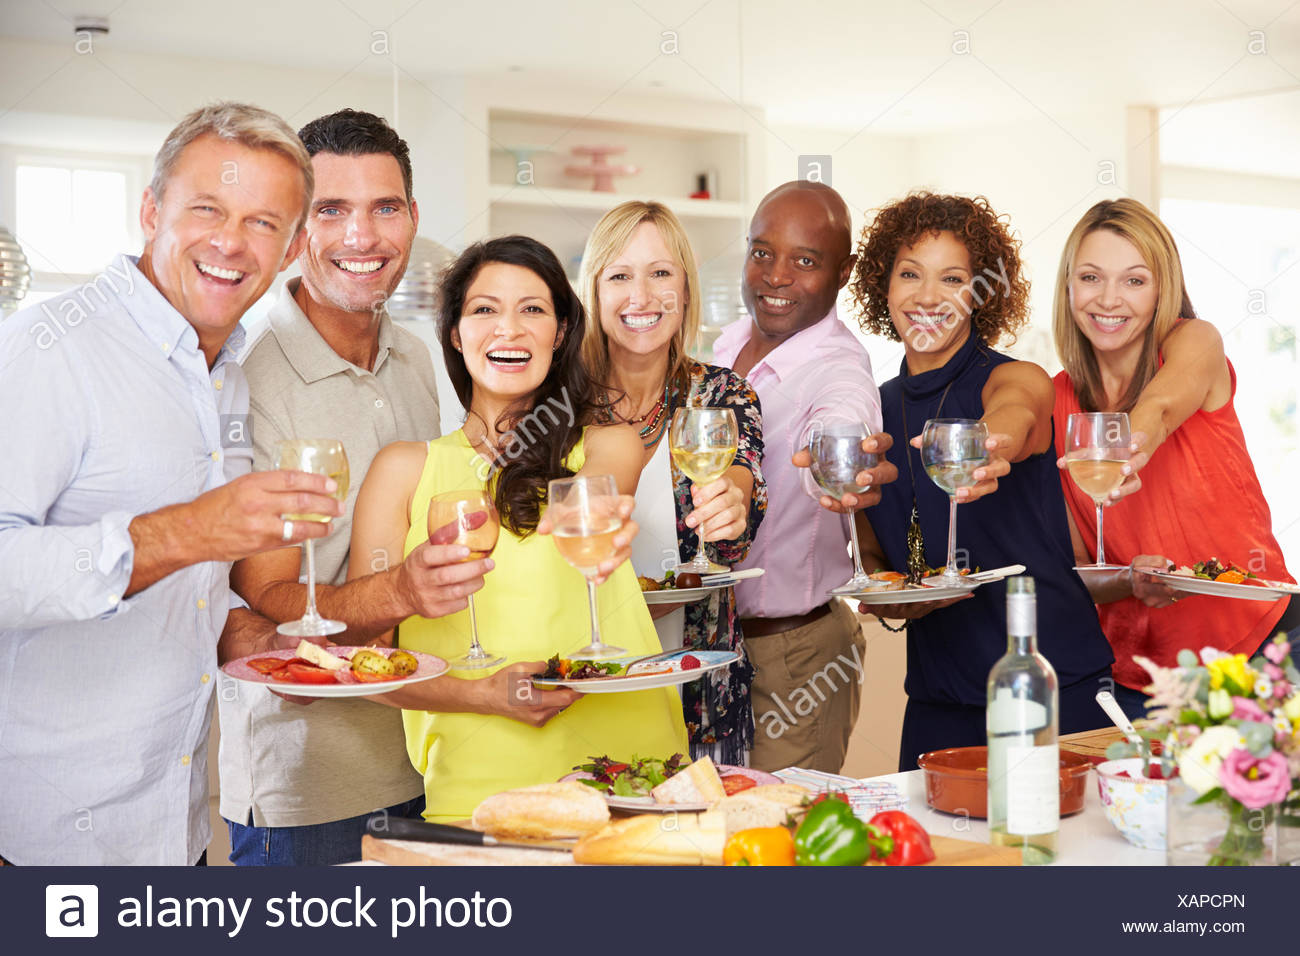 mature dinner party at home stock photos & mature dinner party at